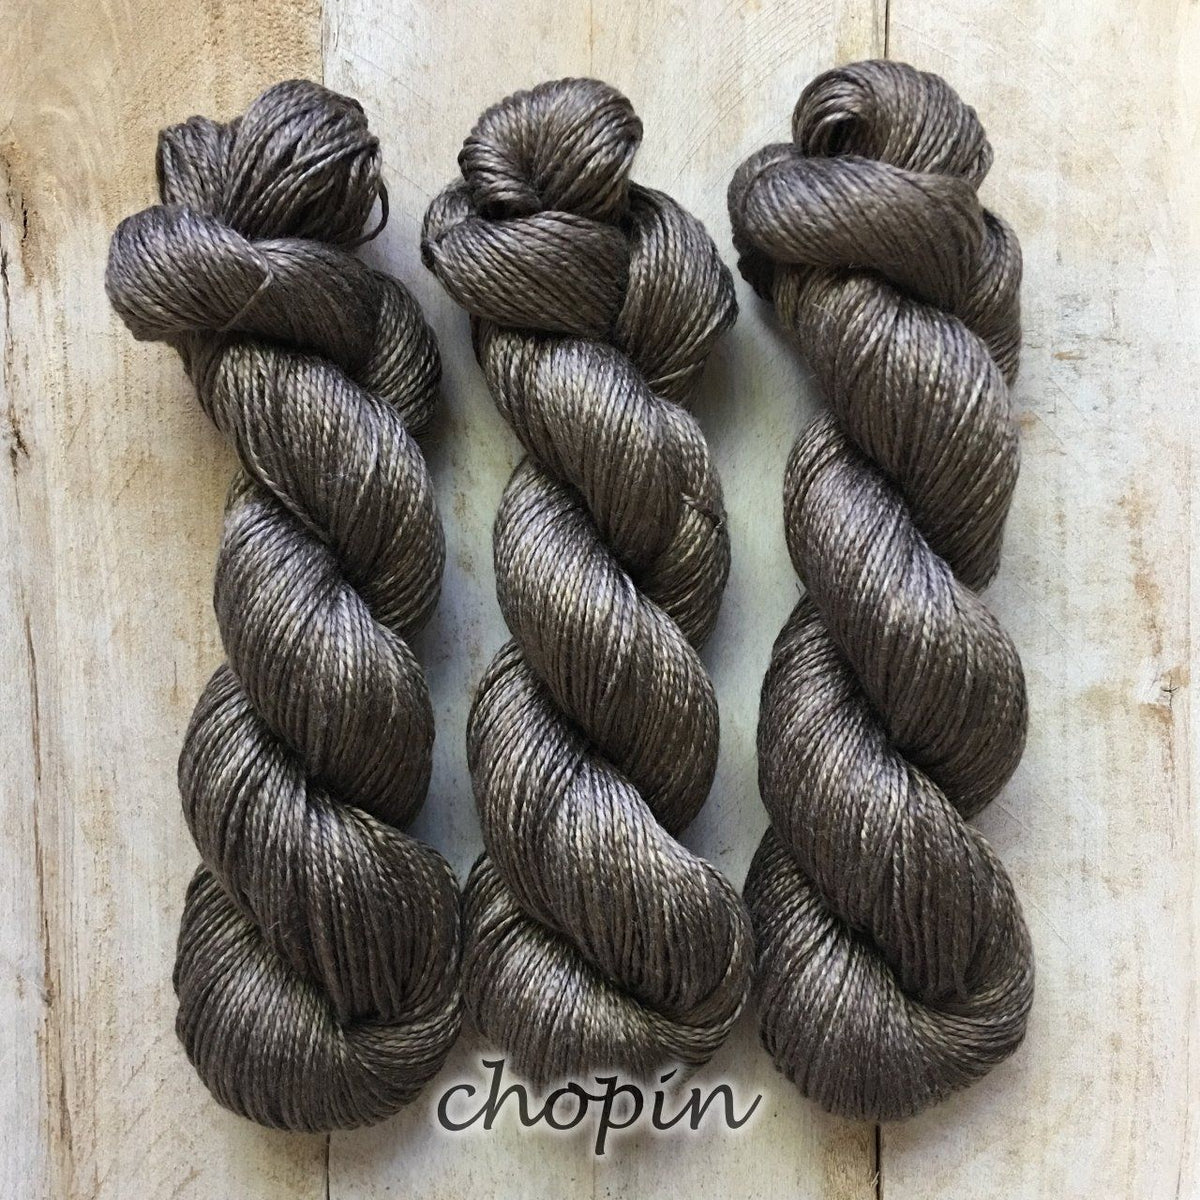 CHOPIN by Louise Robert Design | ALGUA MARINA hand-dyed semi-solid yarn